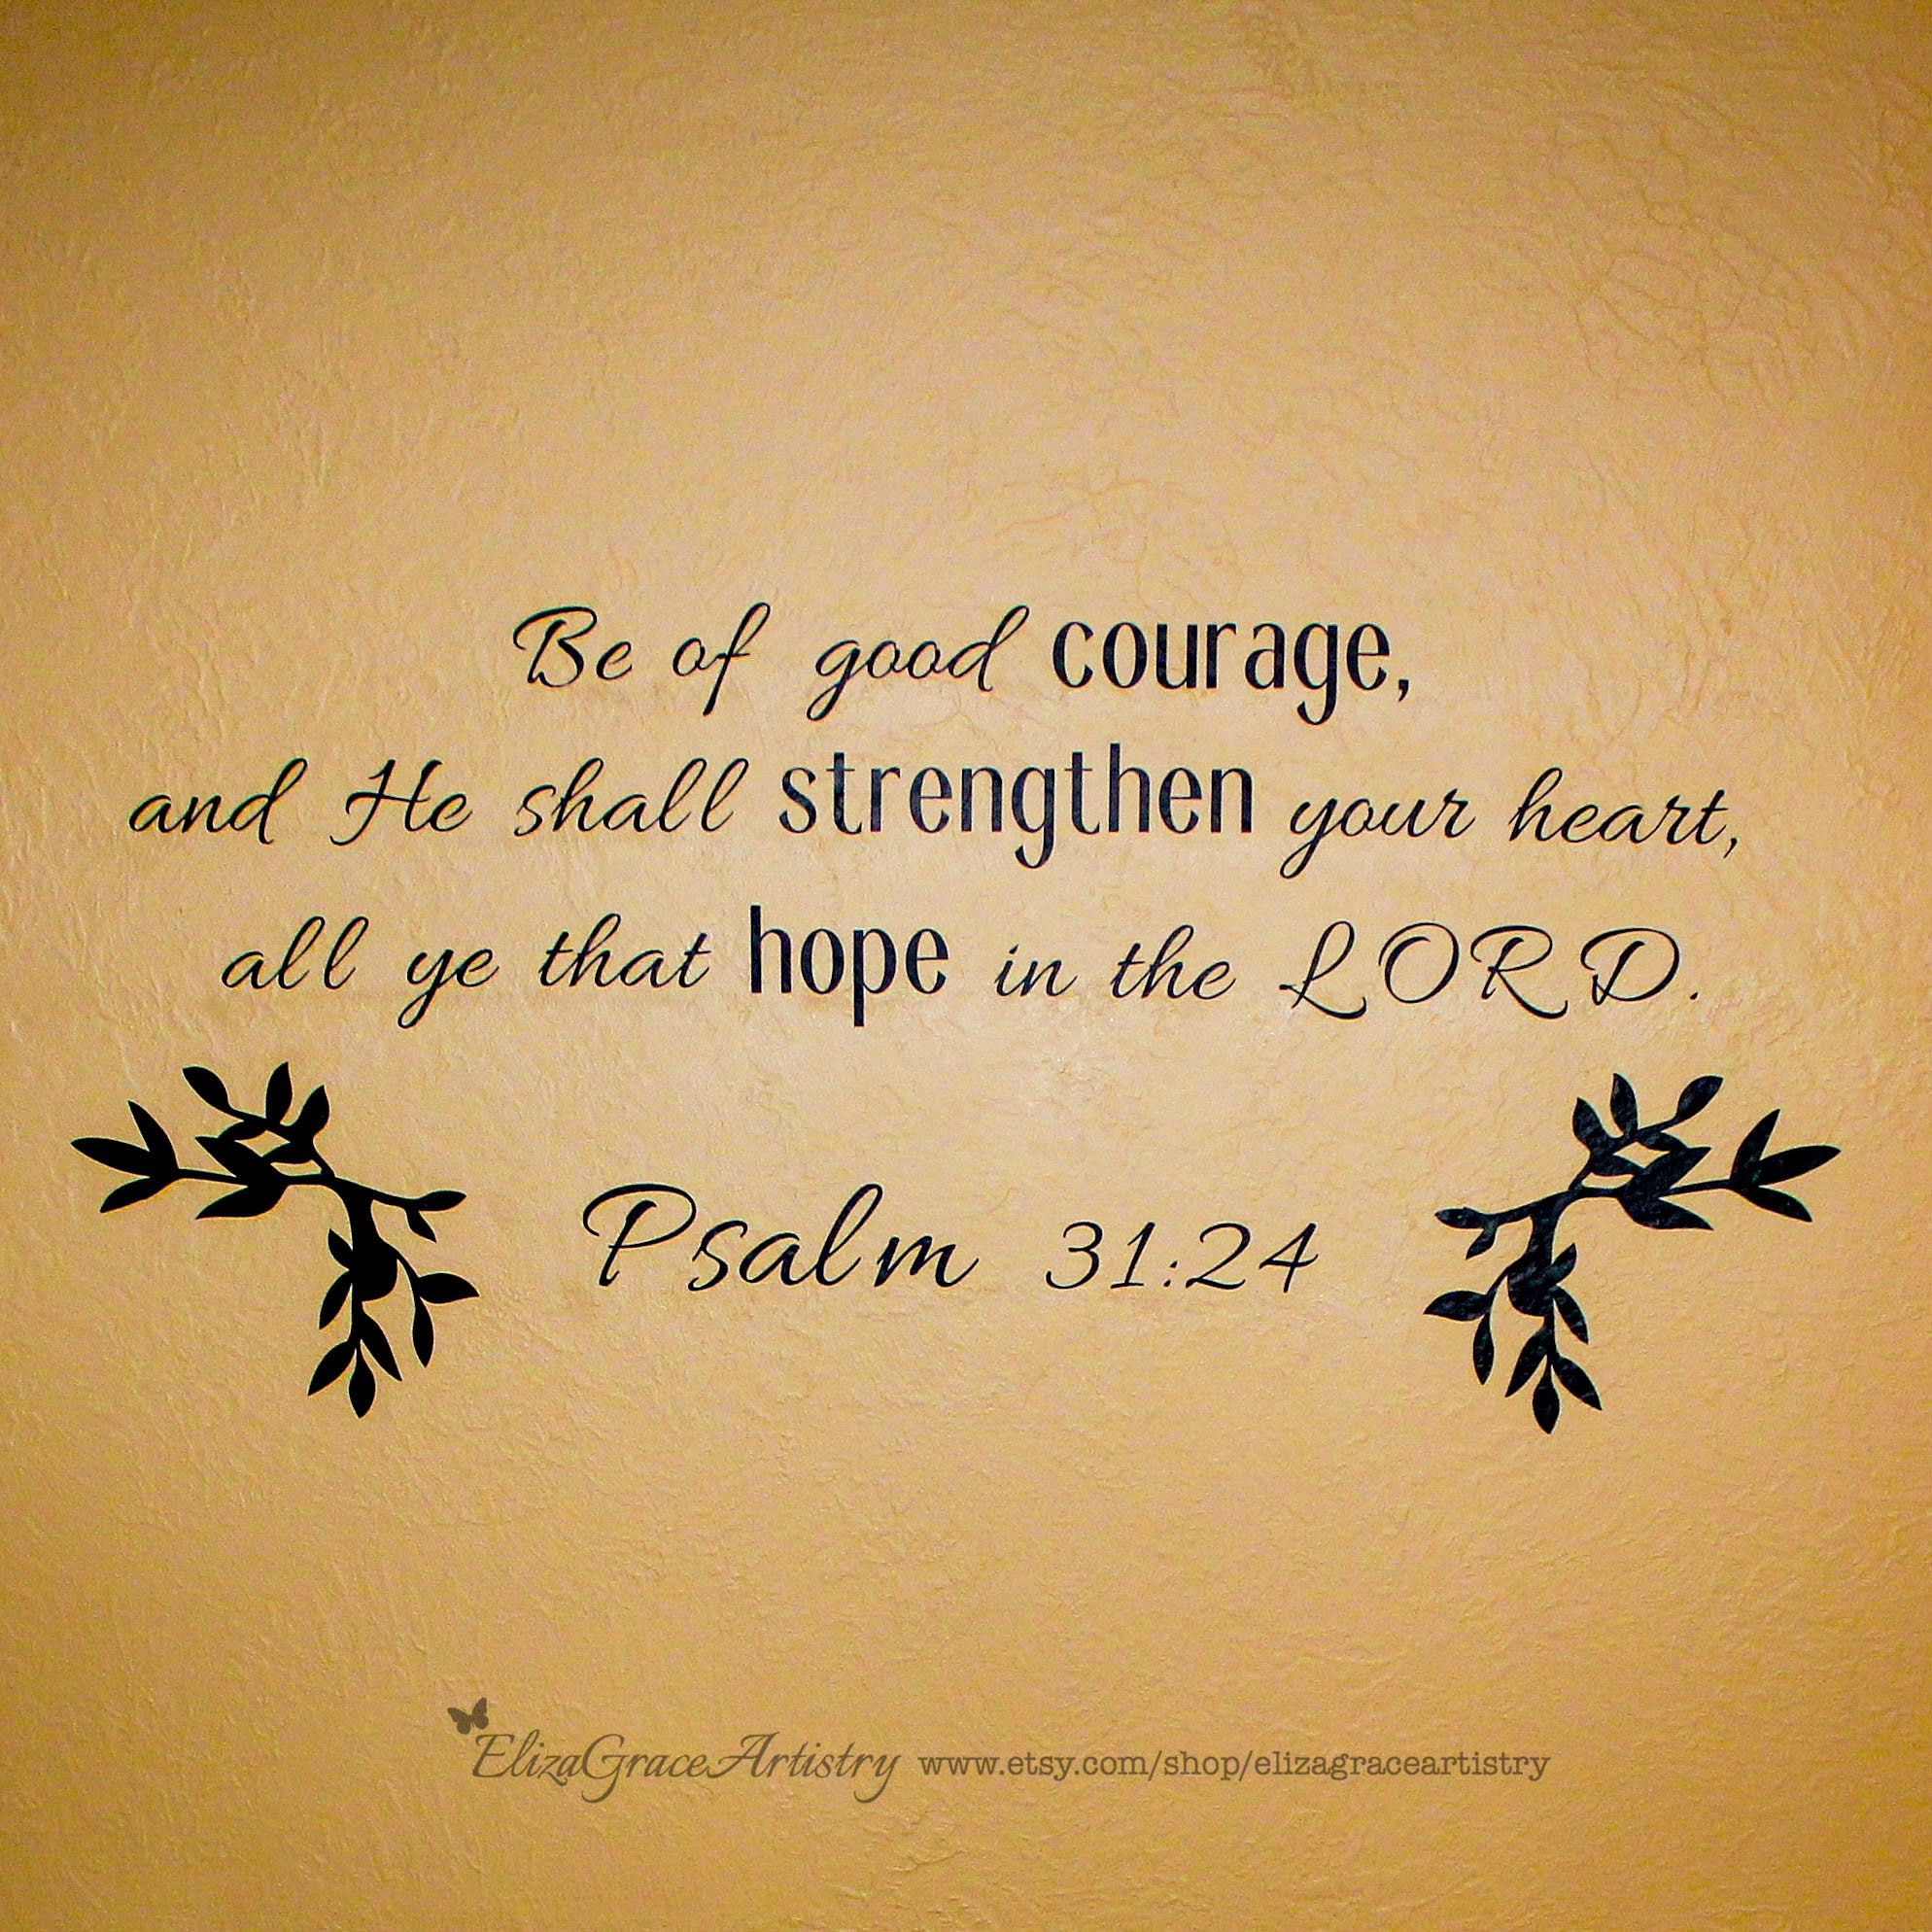 Wall Vinyl Decal Psalm 31:24 Bible verse quote scripture